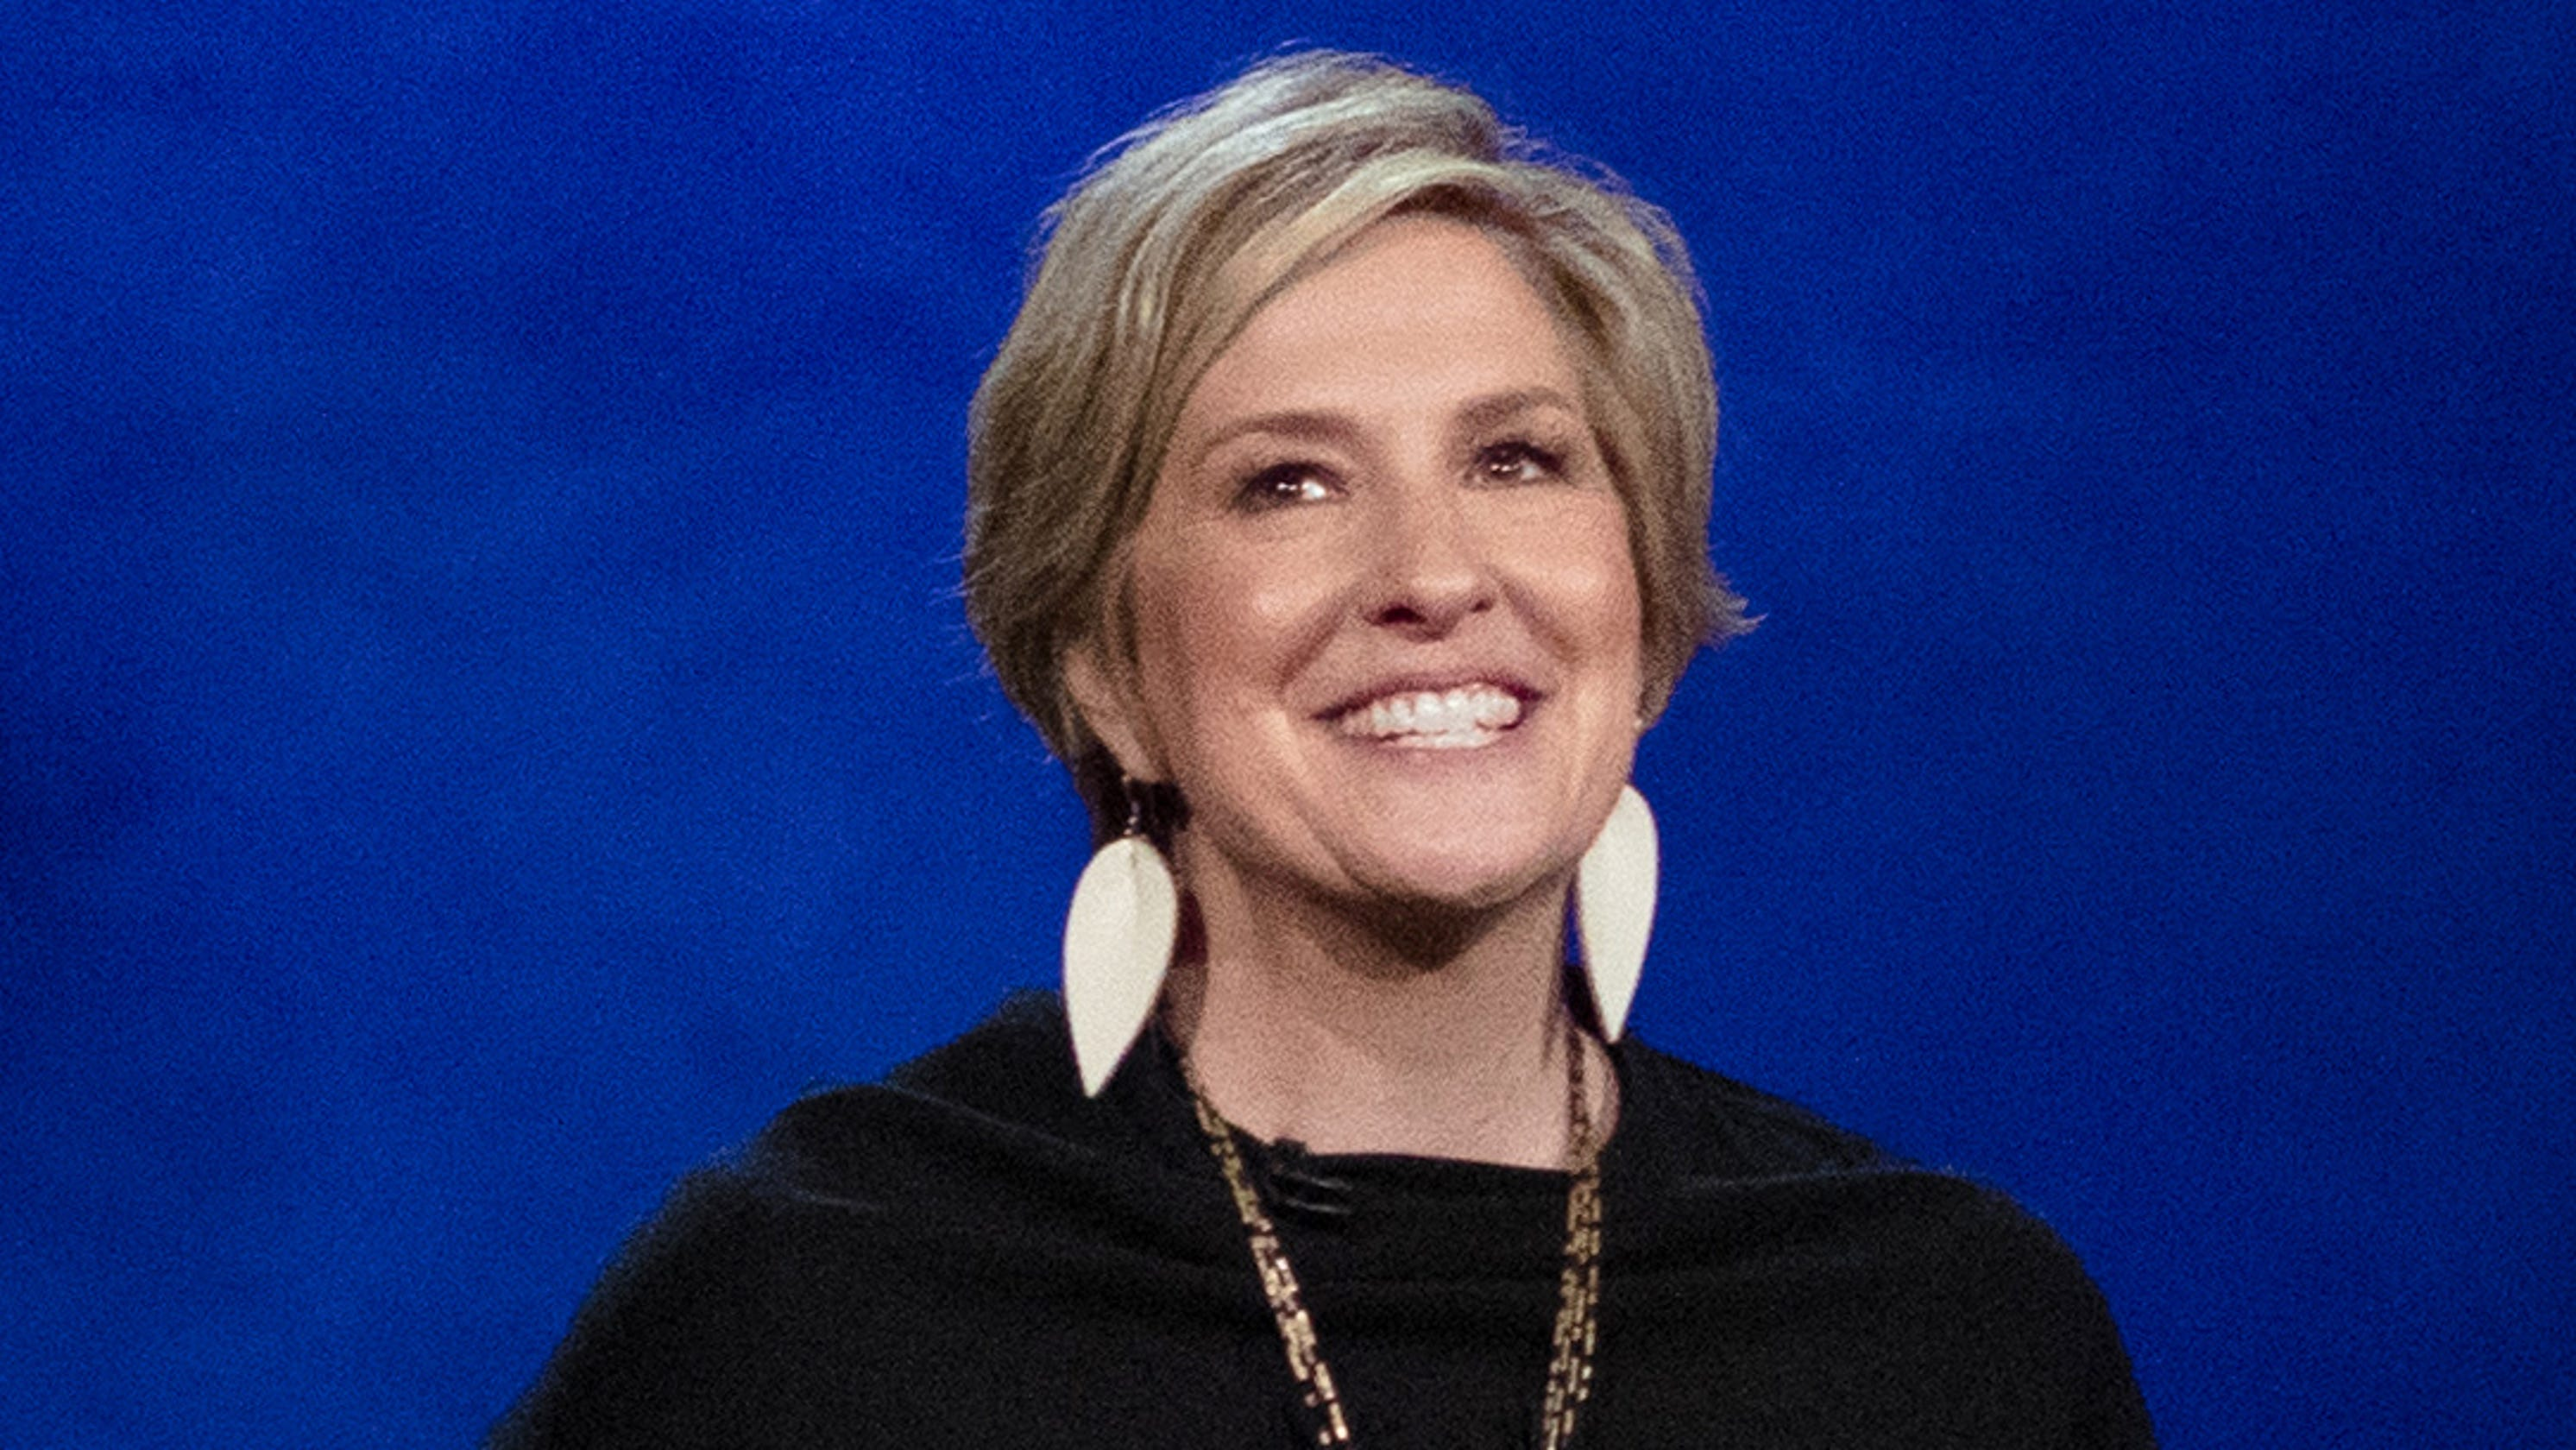 Brené Brown: The Call To Courage' offers 5 takeaways on vulnerability